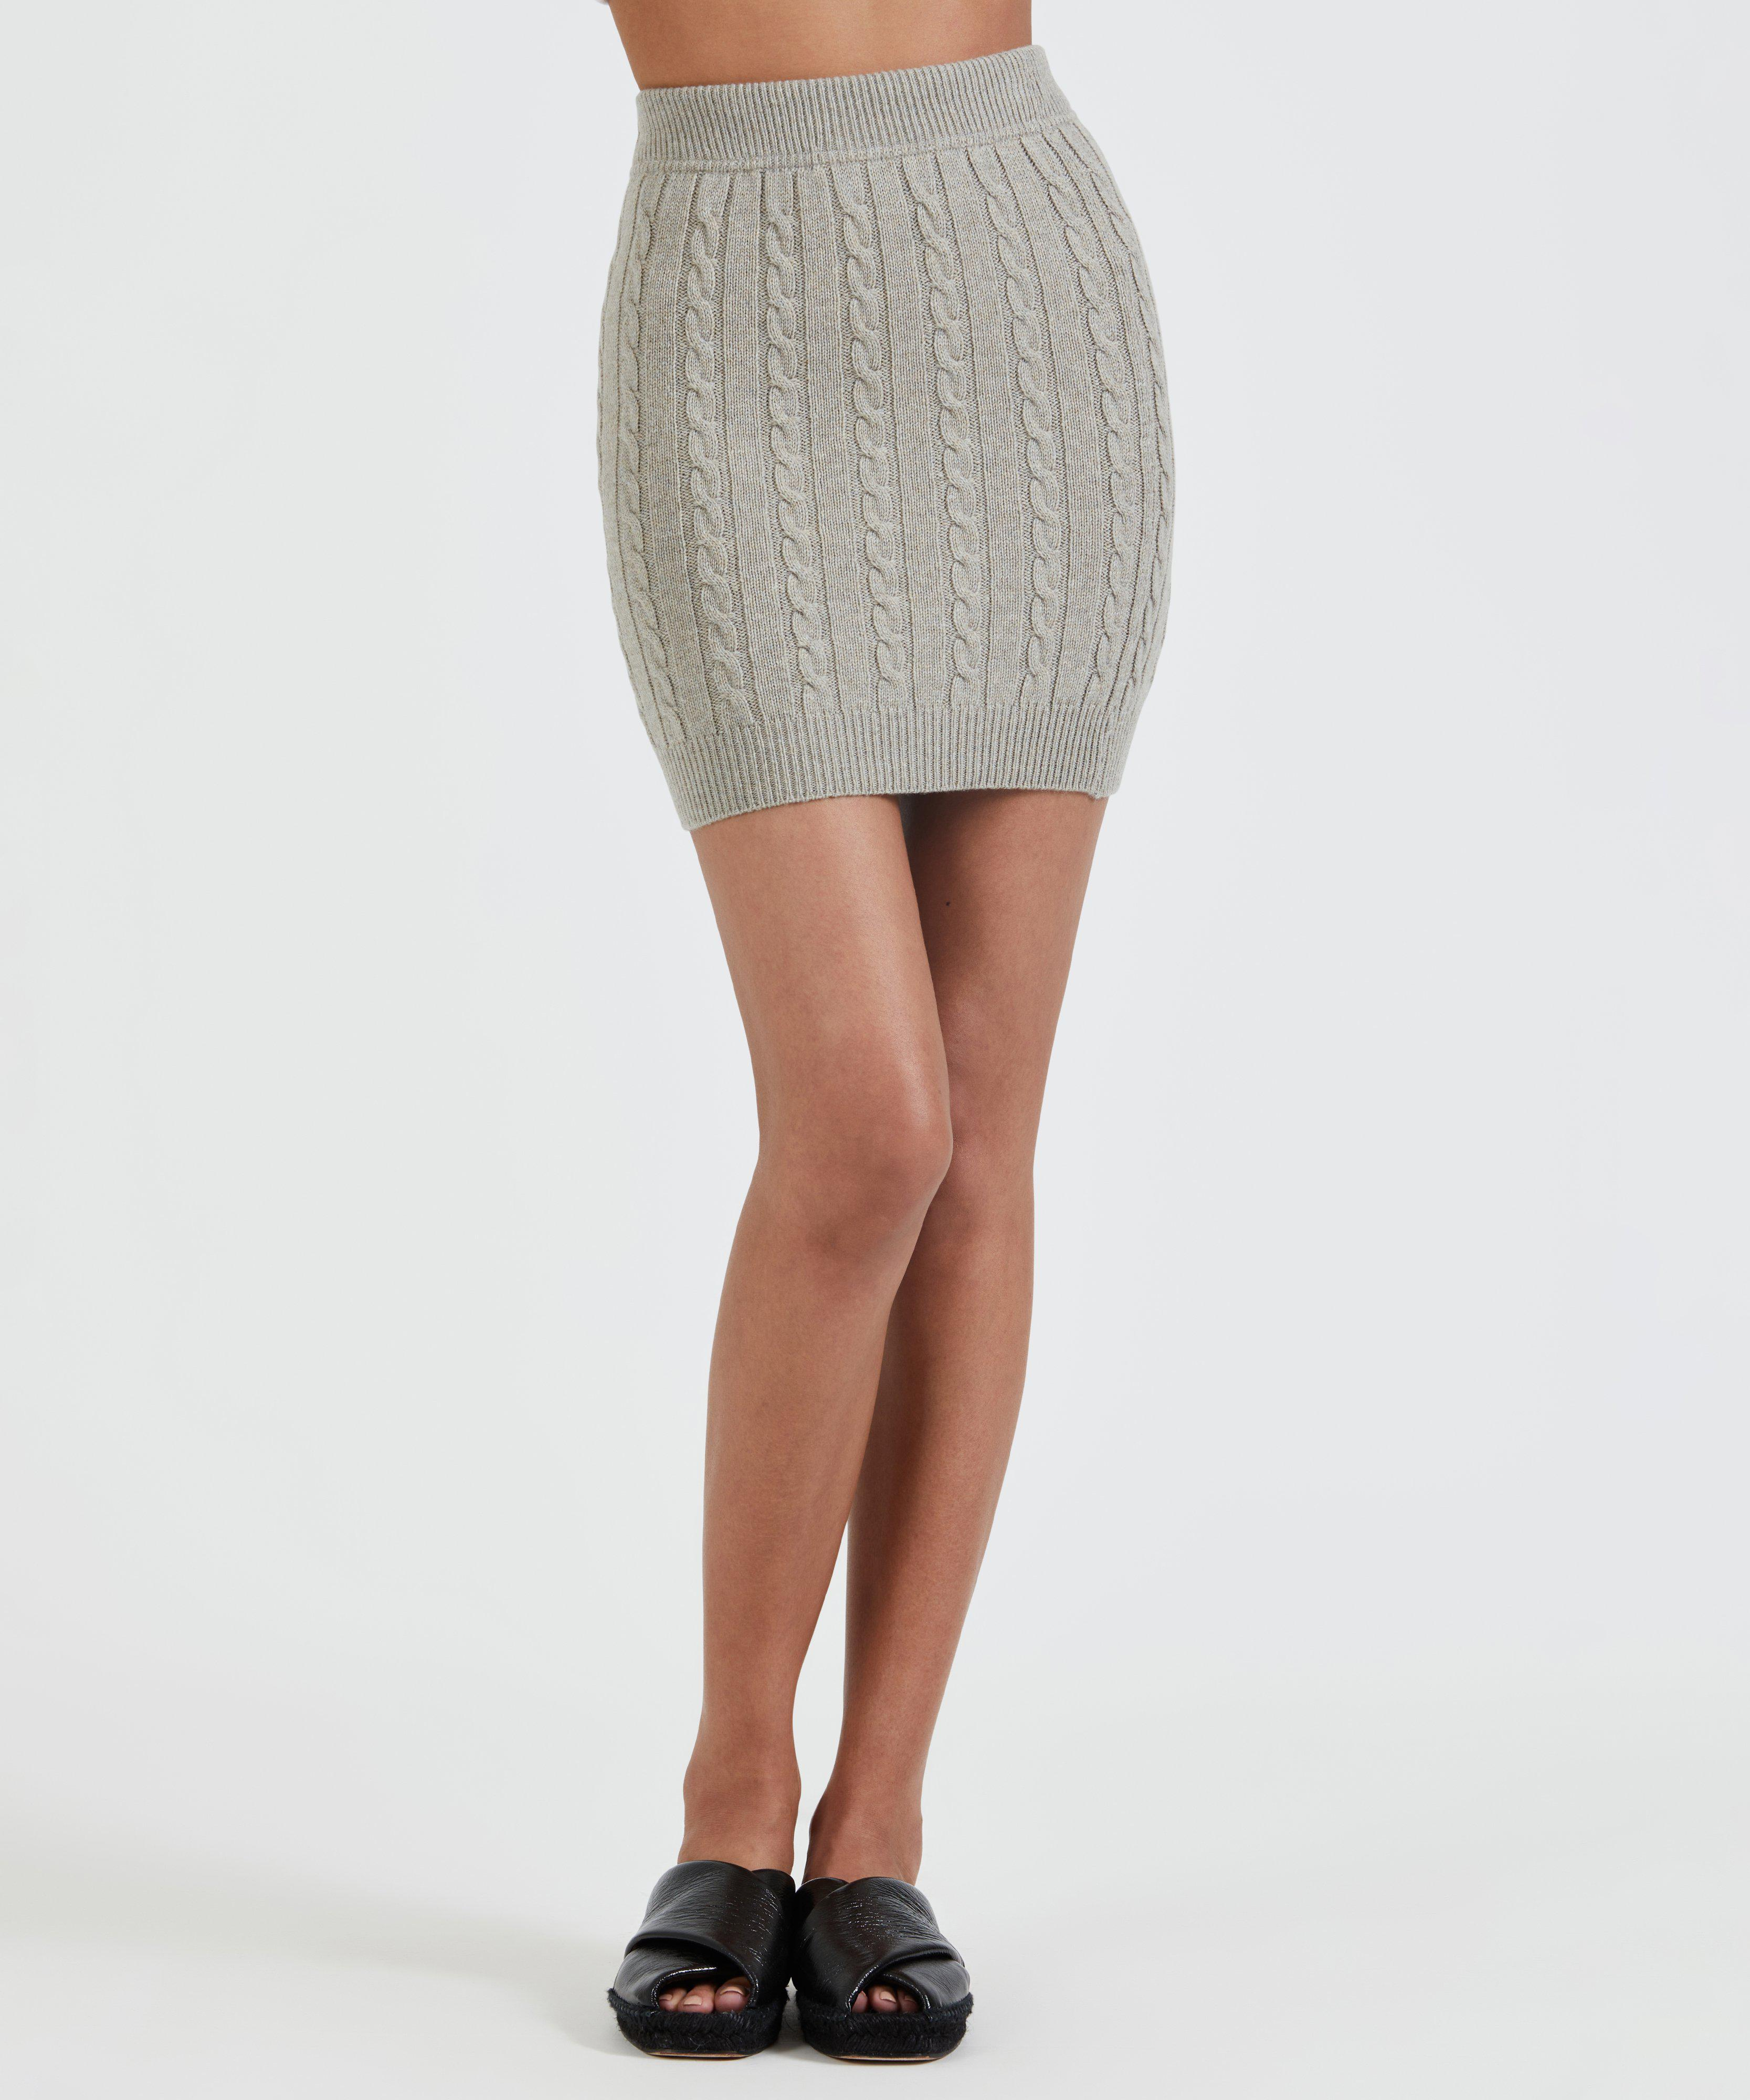 Luxe Wool Cashmere Cable Knit Skirt - Pumice